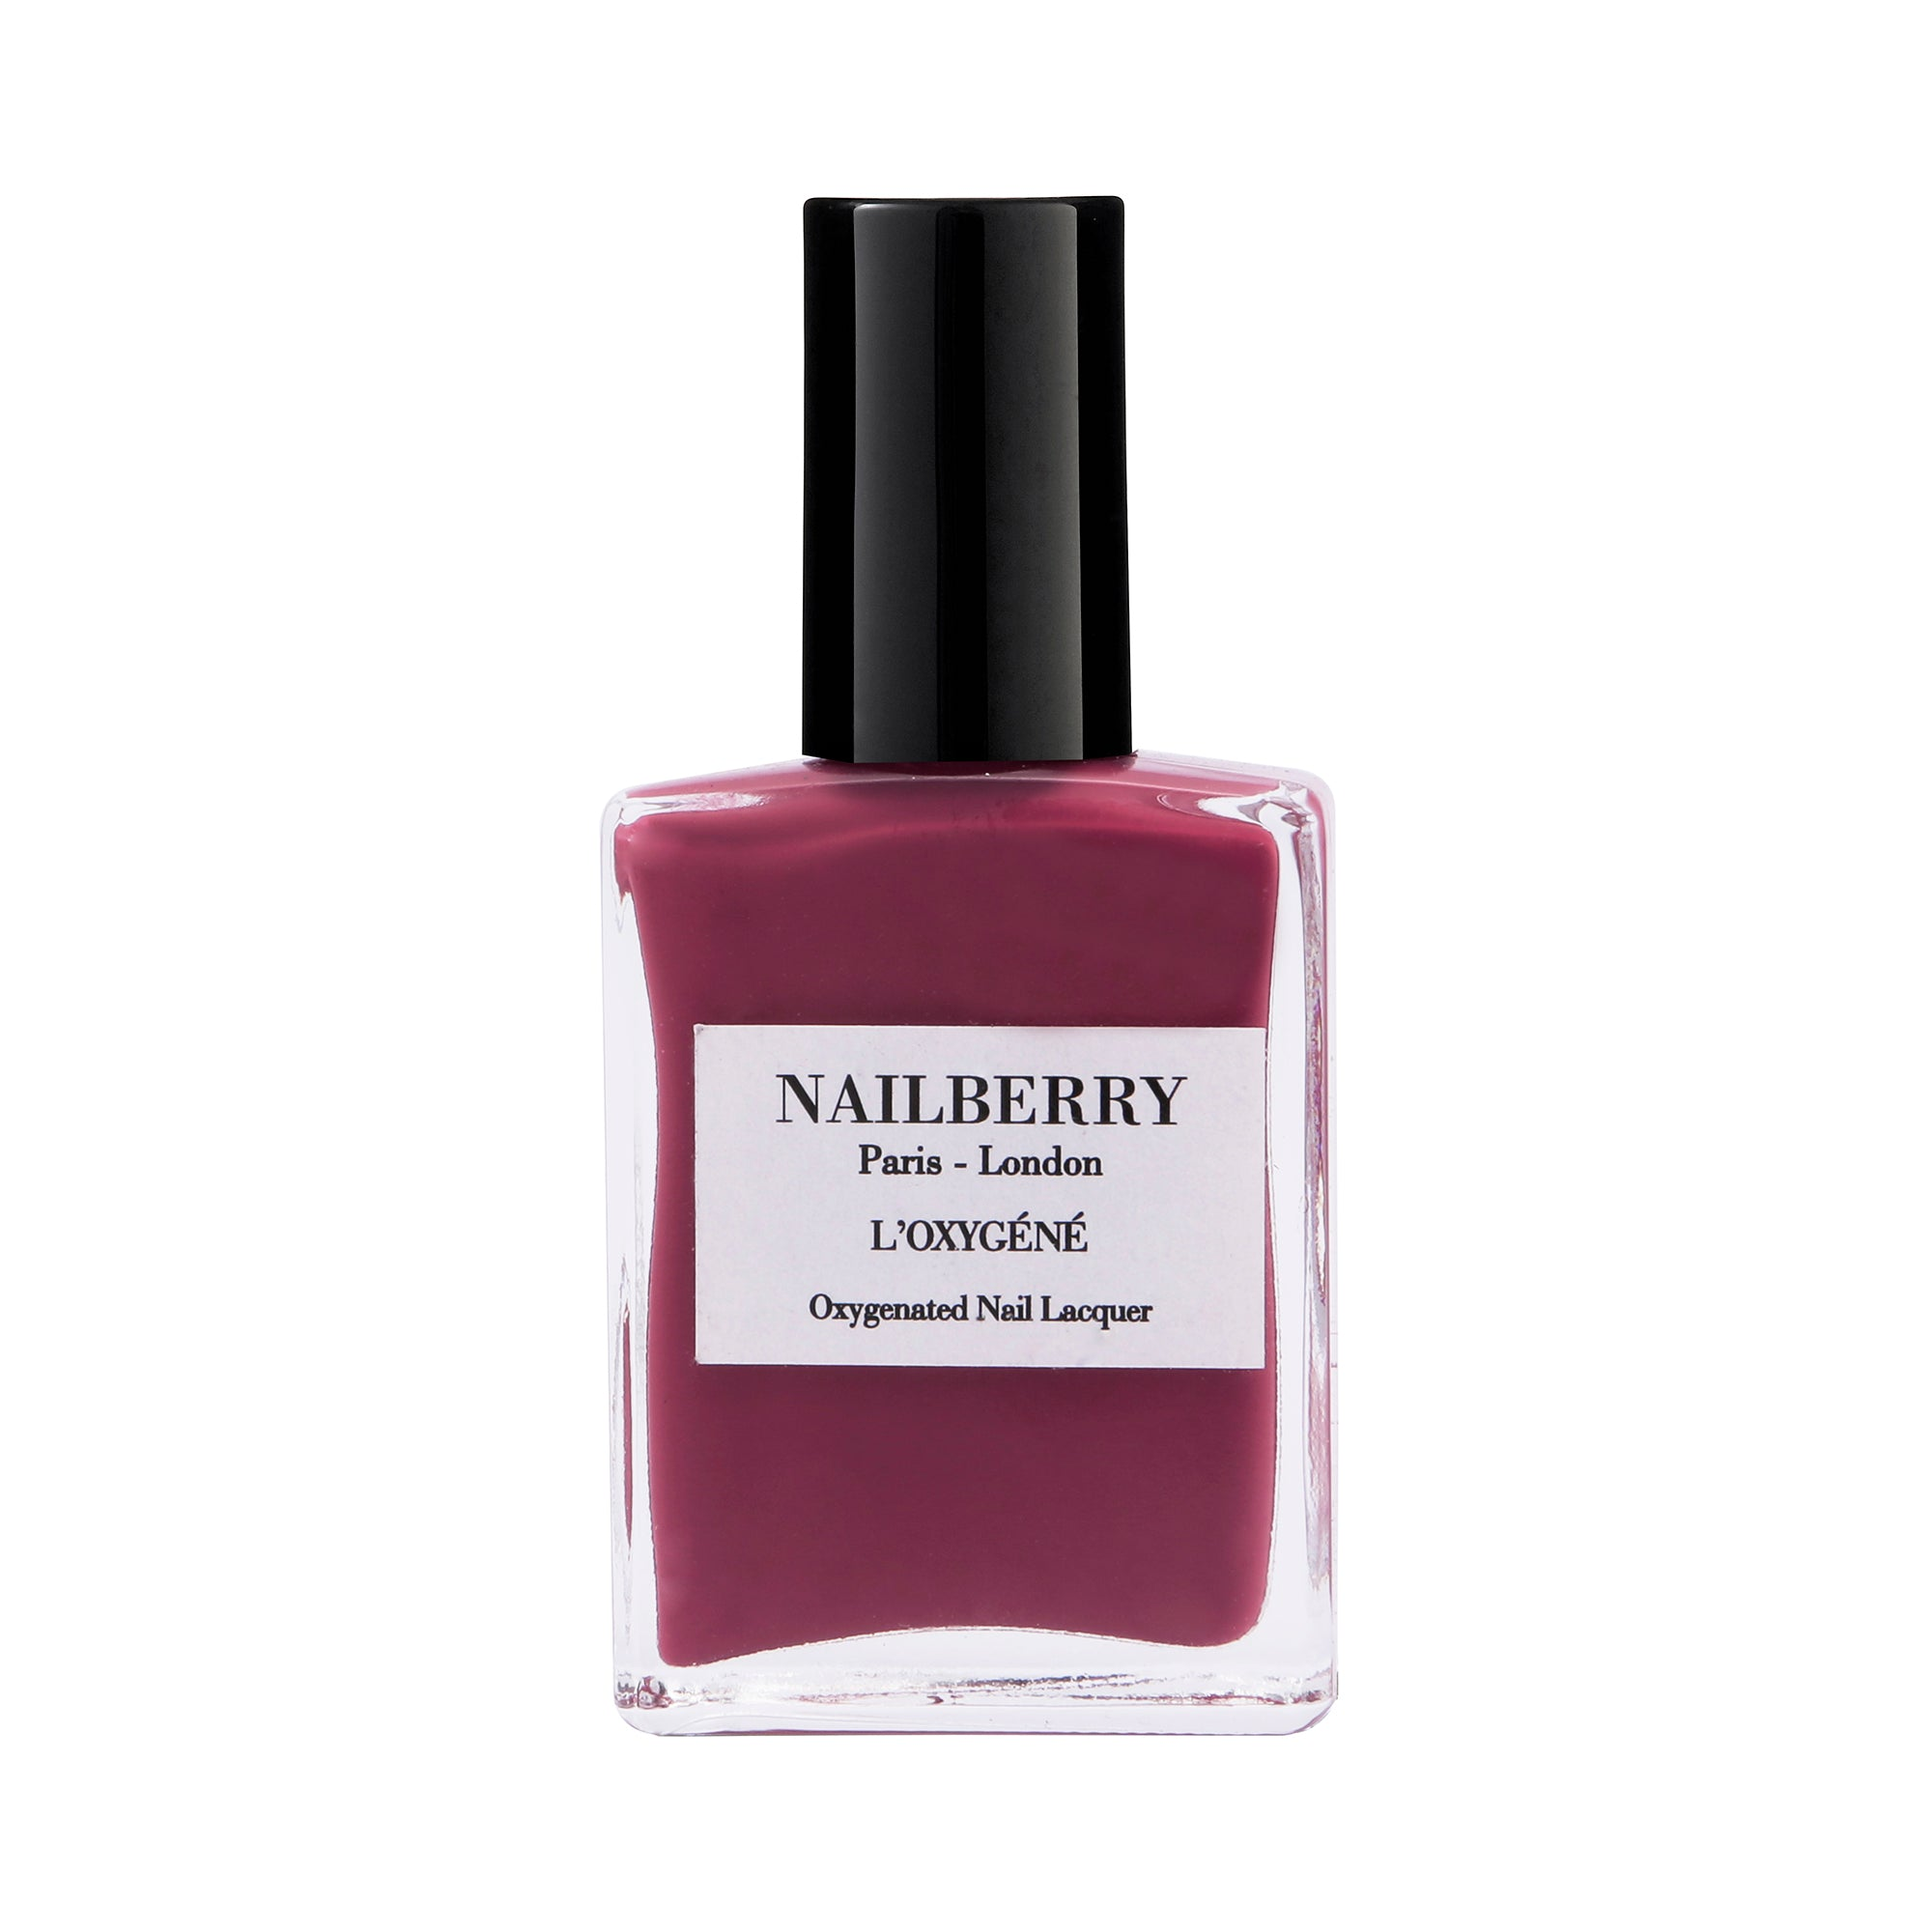 Nailberry Hippie Chic